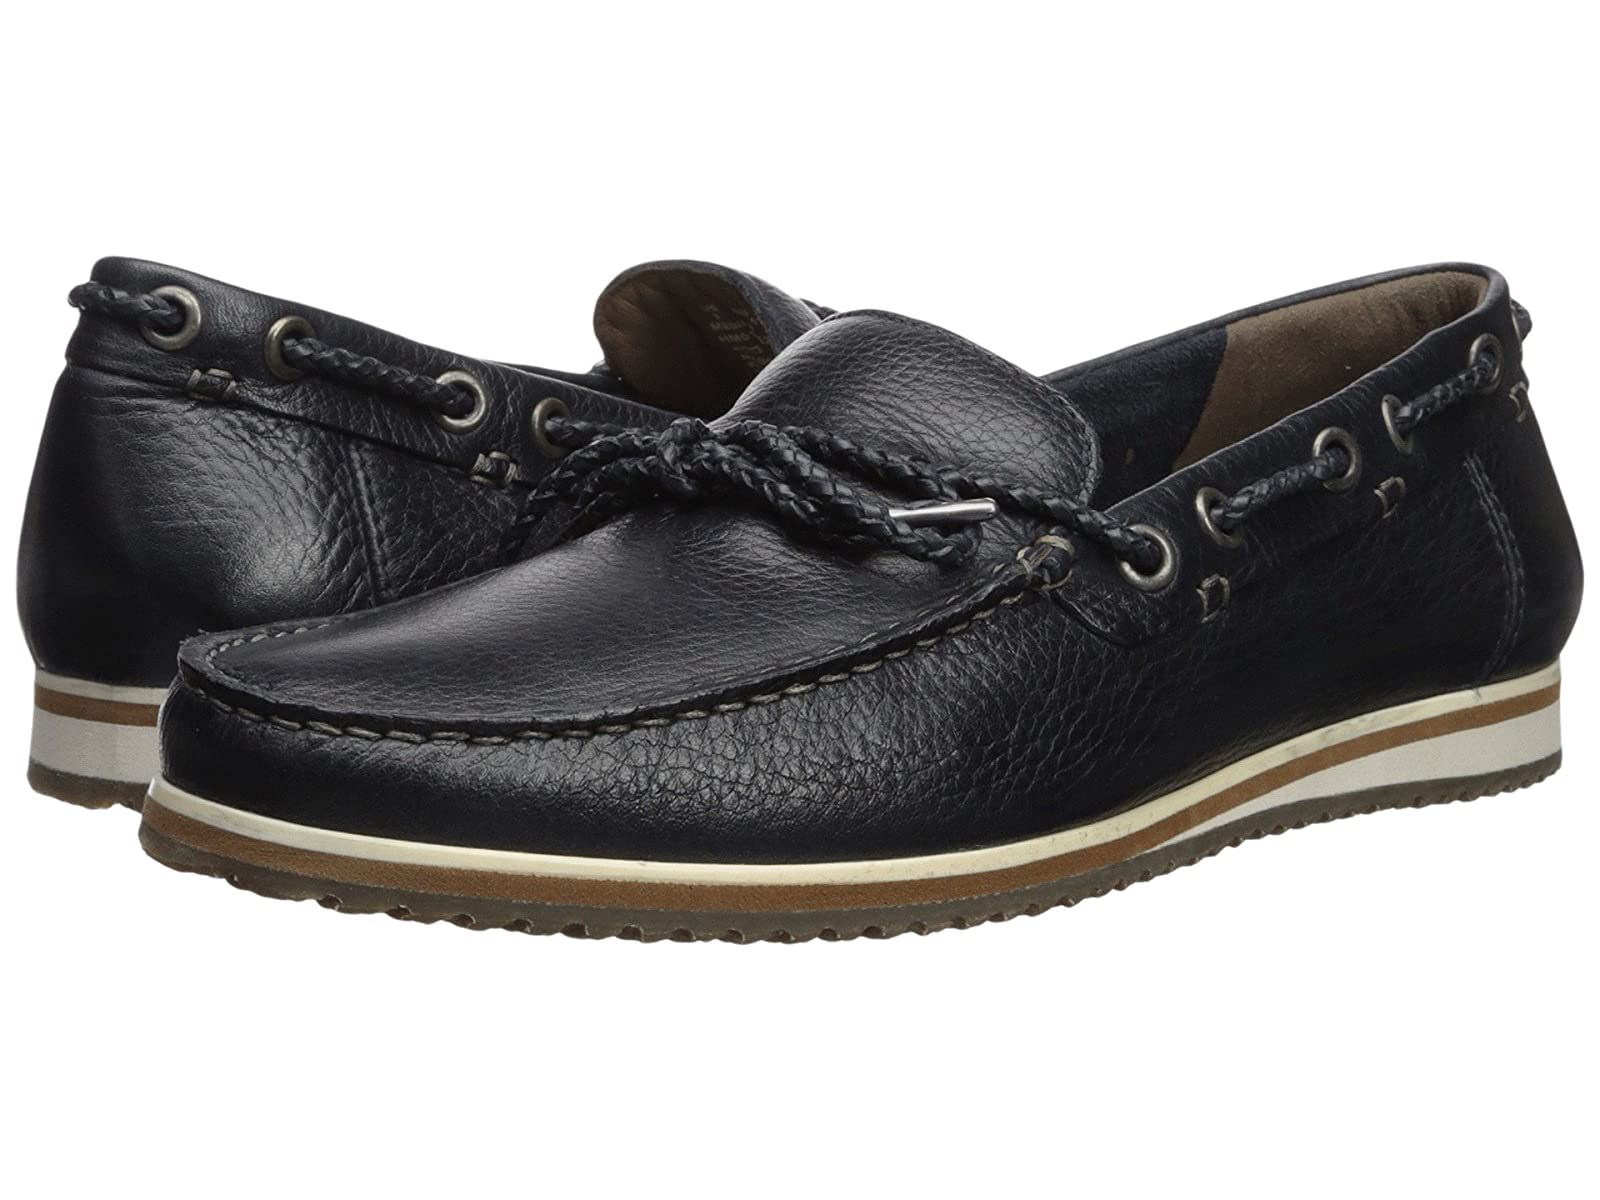 Hush Puppies Bolognese Rope LaceCheap and distinctive eye-catching shoes